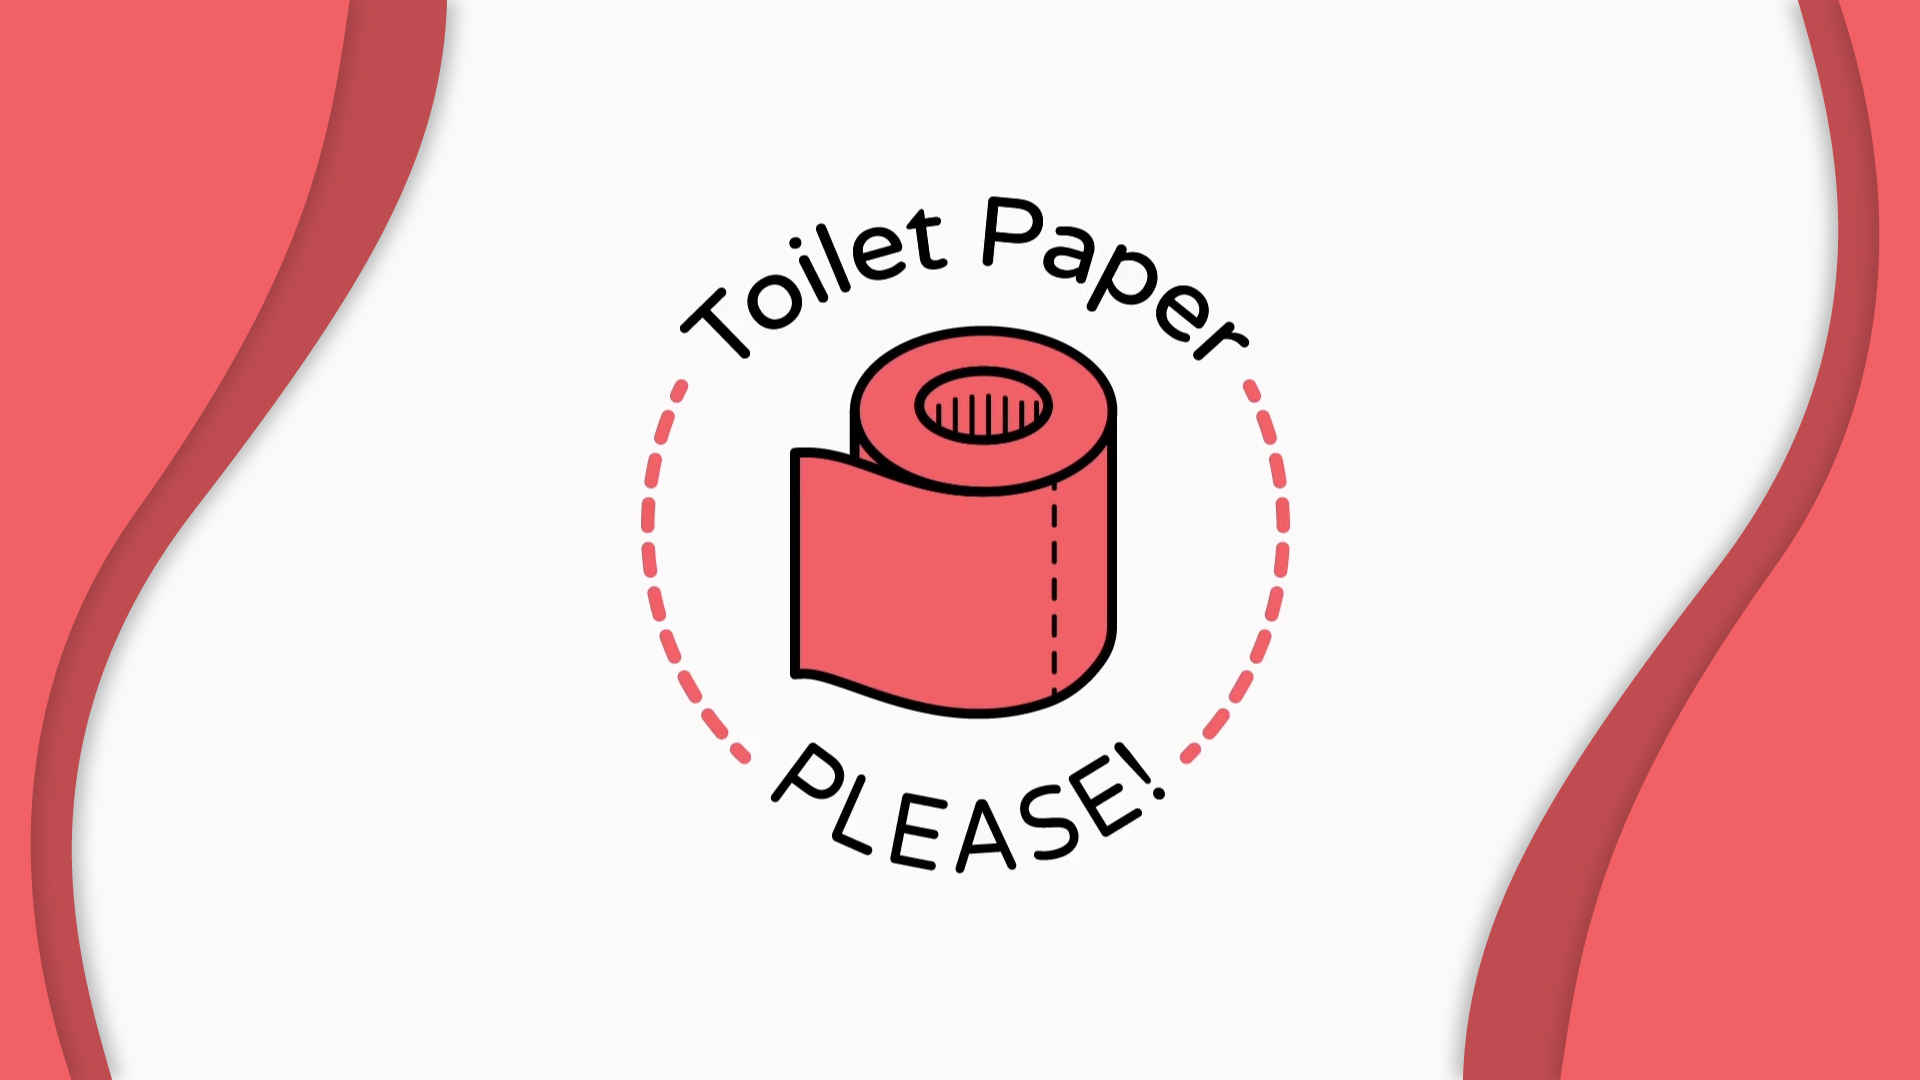 Toilet_Paper_PLEASE_00_Logo